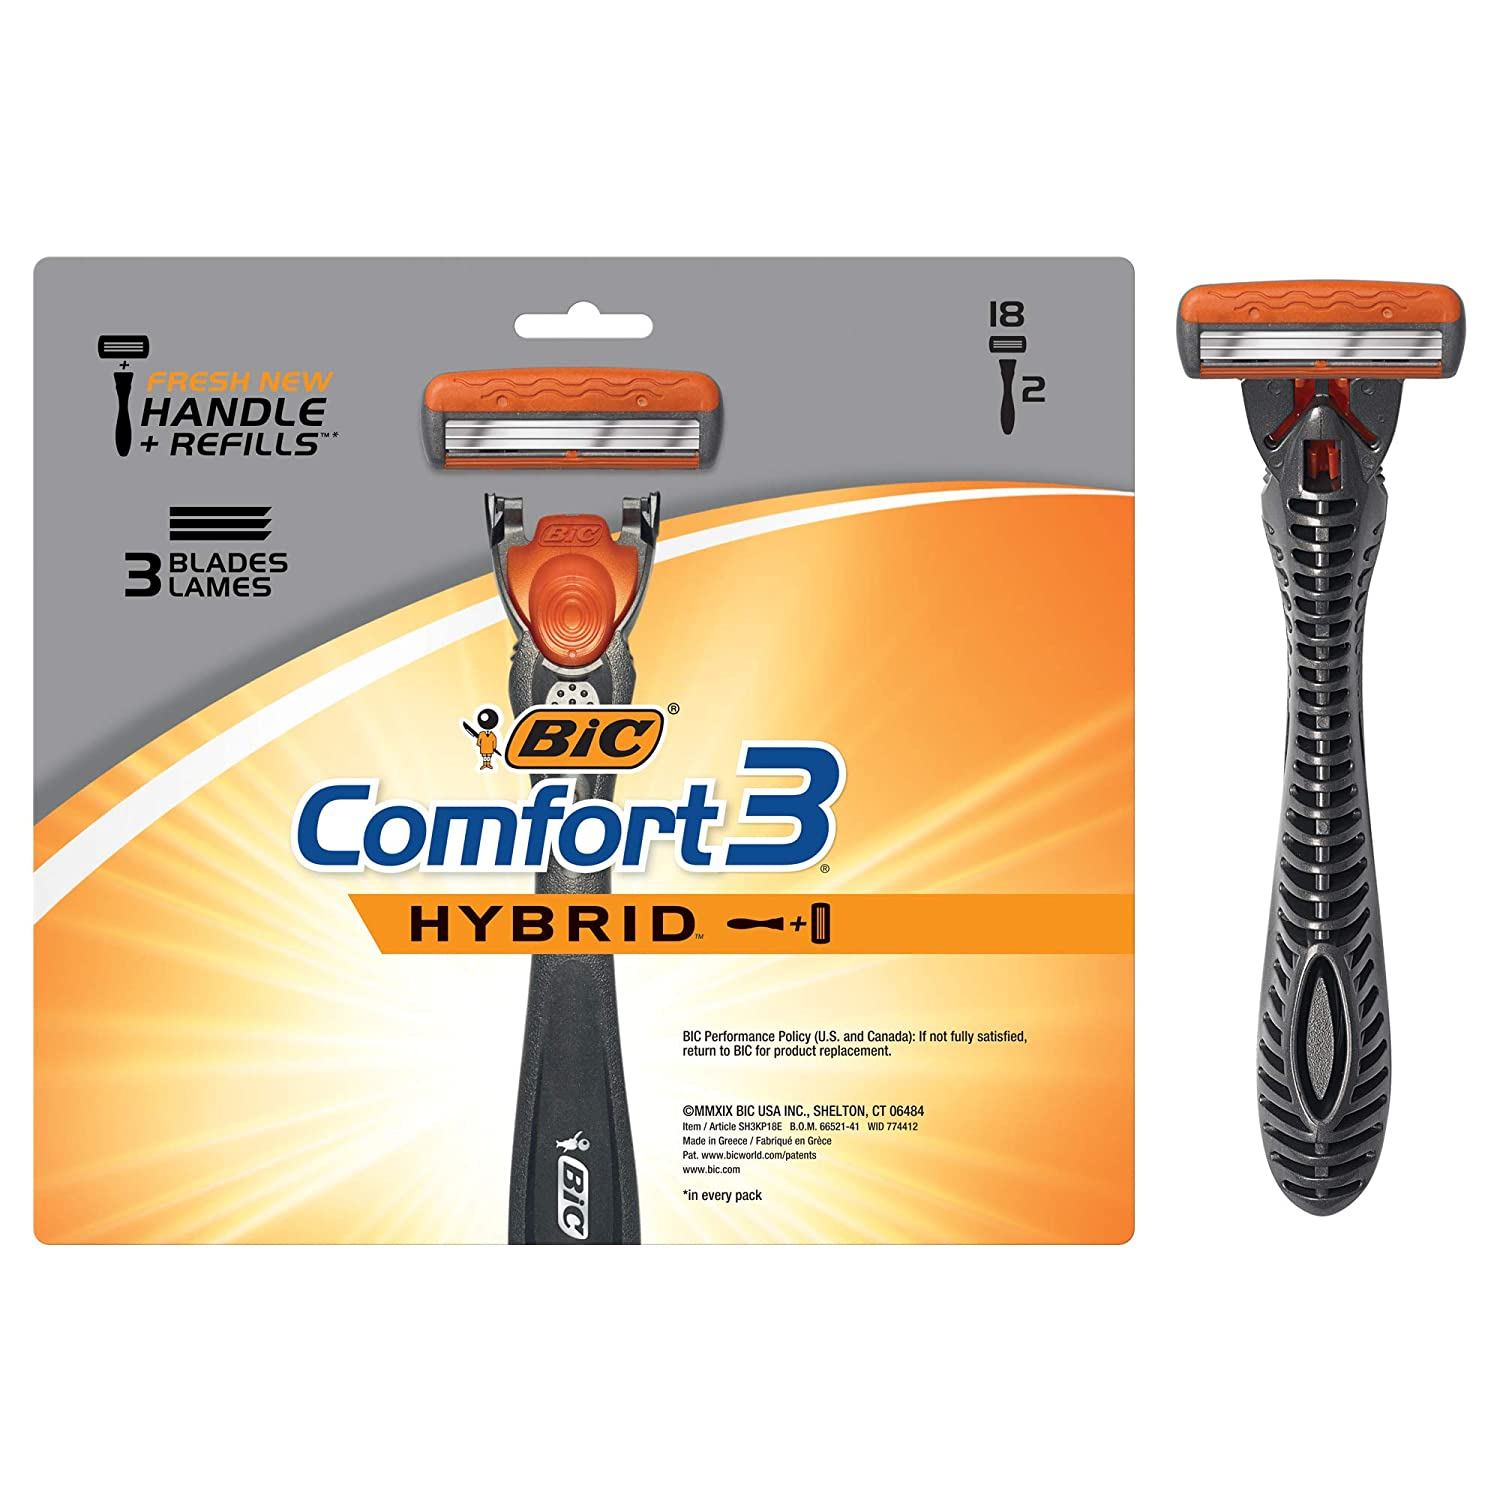 BIC Comfort 3 Hybrid Men's 3-Blade Disposable Razor, 2 Handles and 18 Cartridges